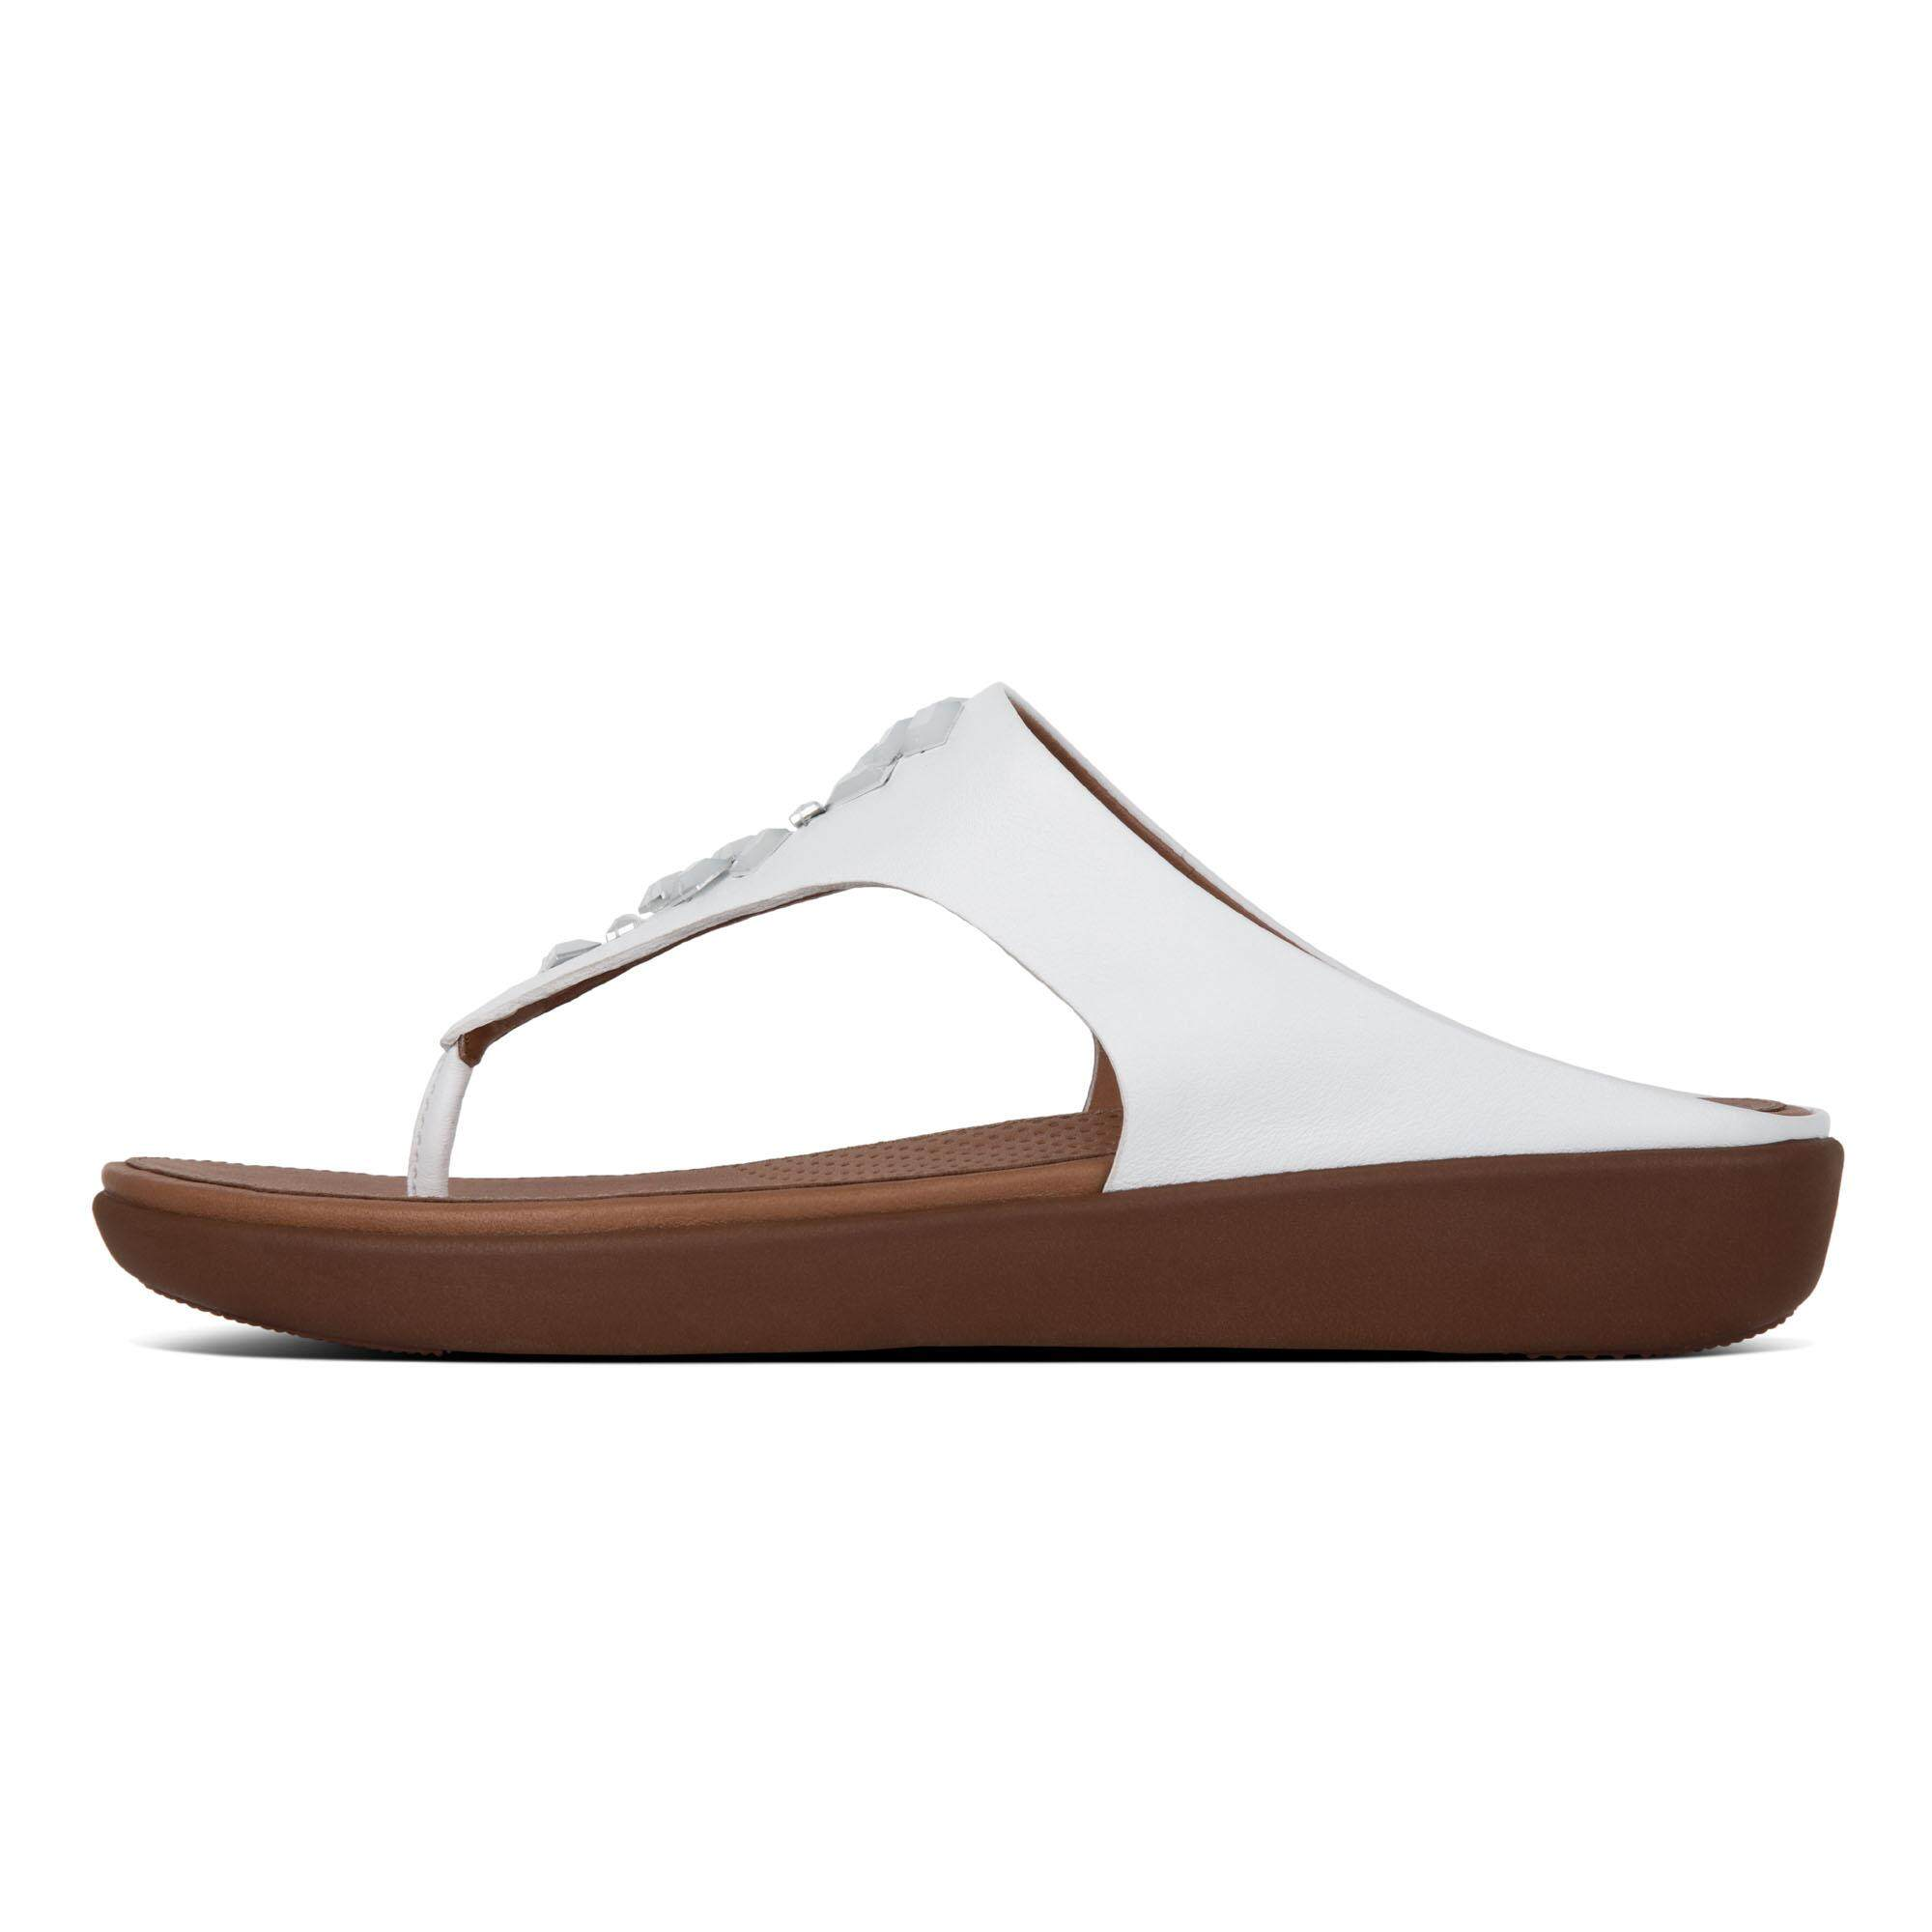 90c81cff79ce2 Fitflop-Banda Leather Toe-Thong-Crystal-Urban White-US 7